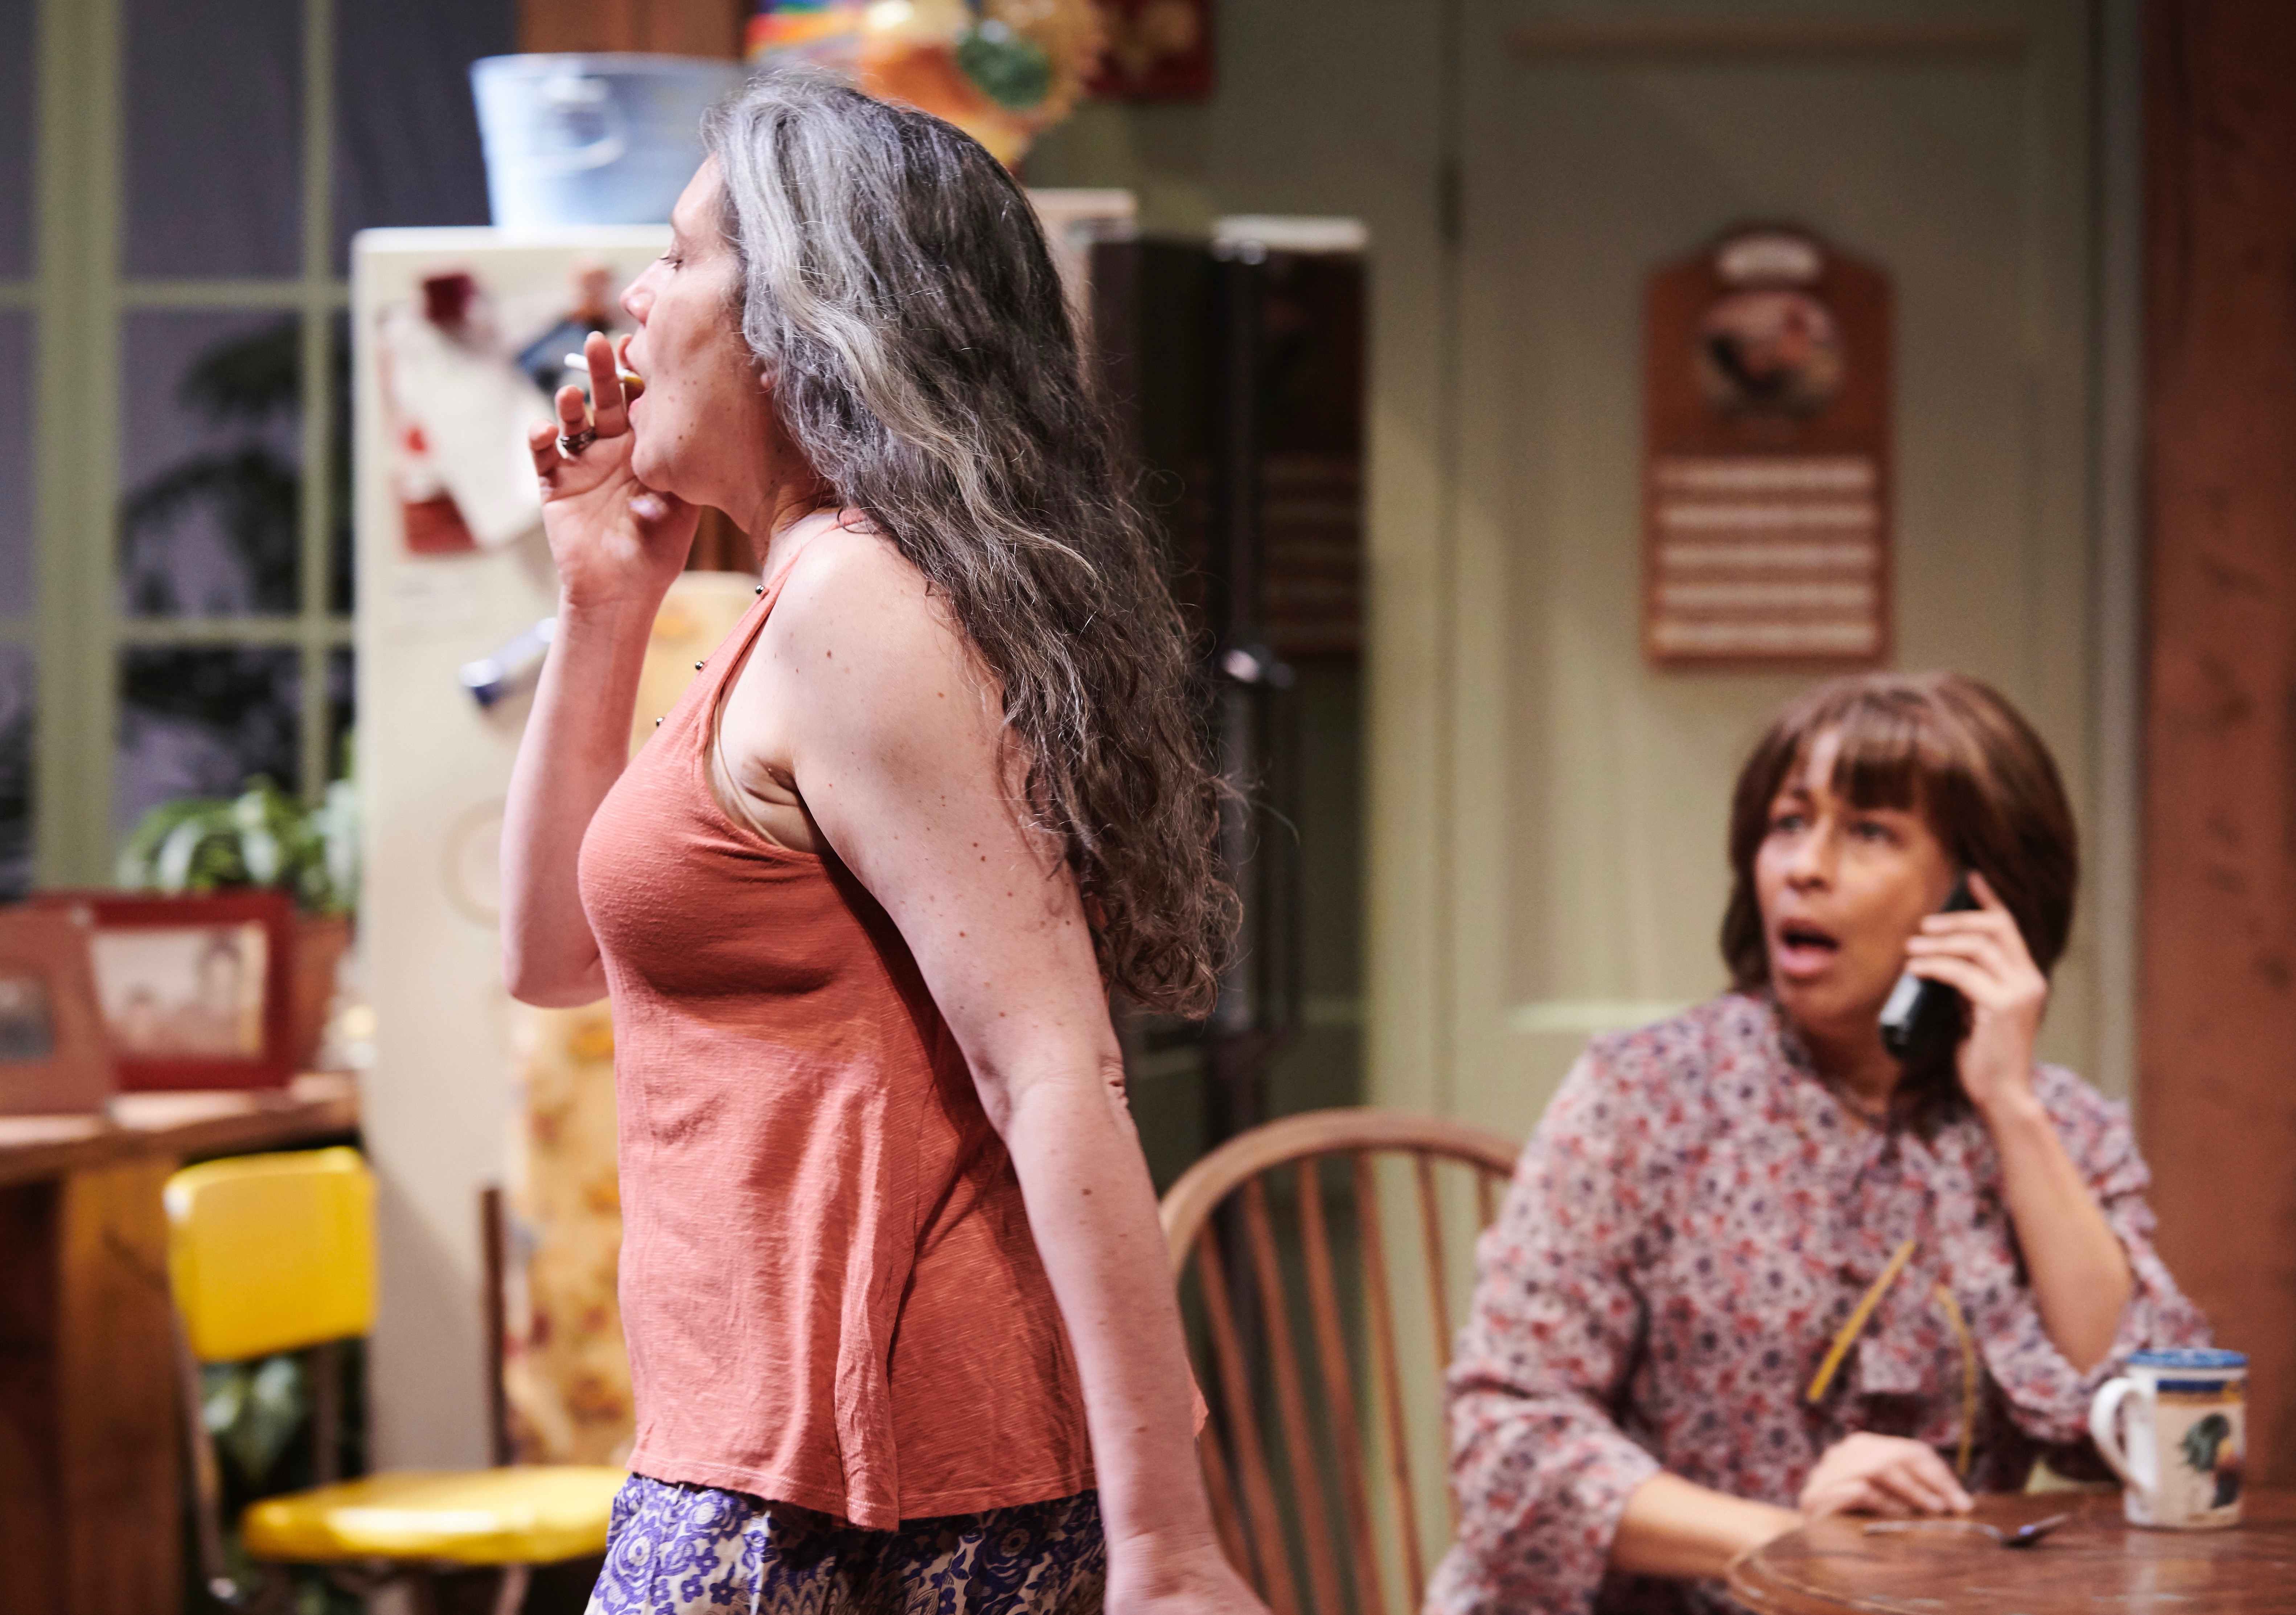 Laurie Klatscher (L) is smokin' in 'The Roommate' at City Theatre, while Tamara Tunie observes. (photo: Kristi Jan Hoover)